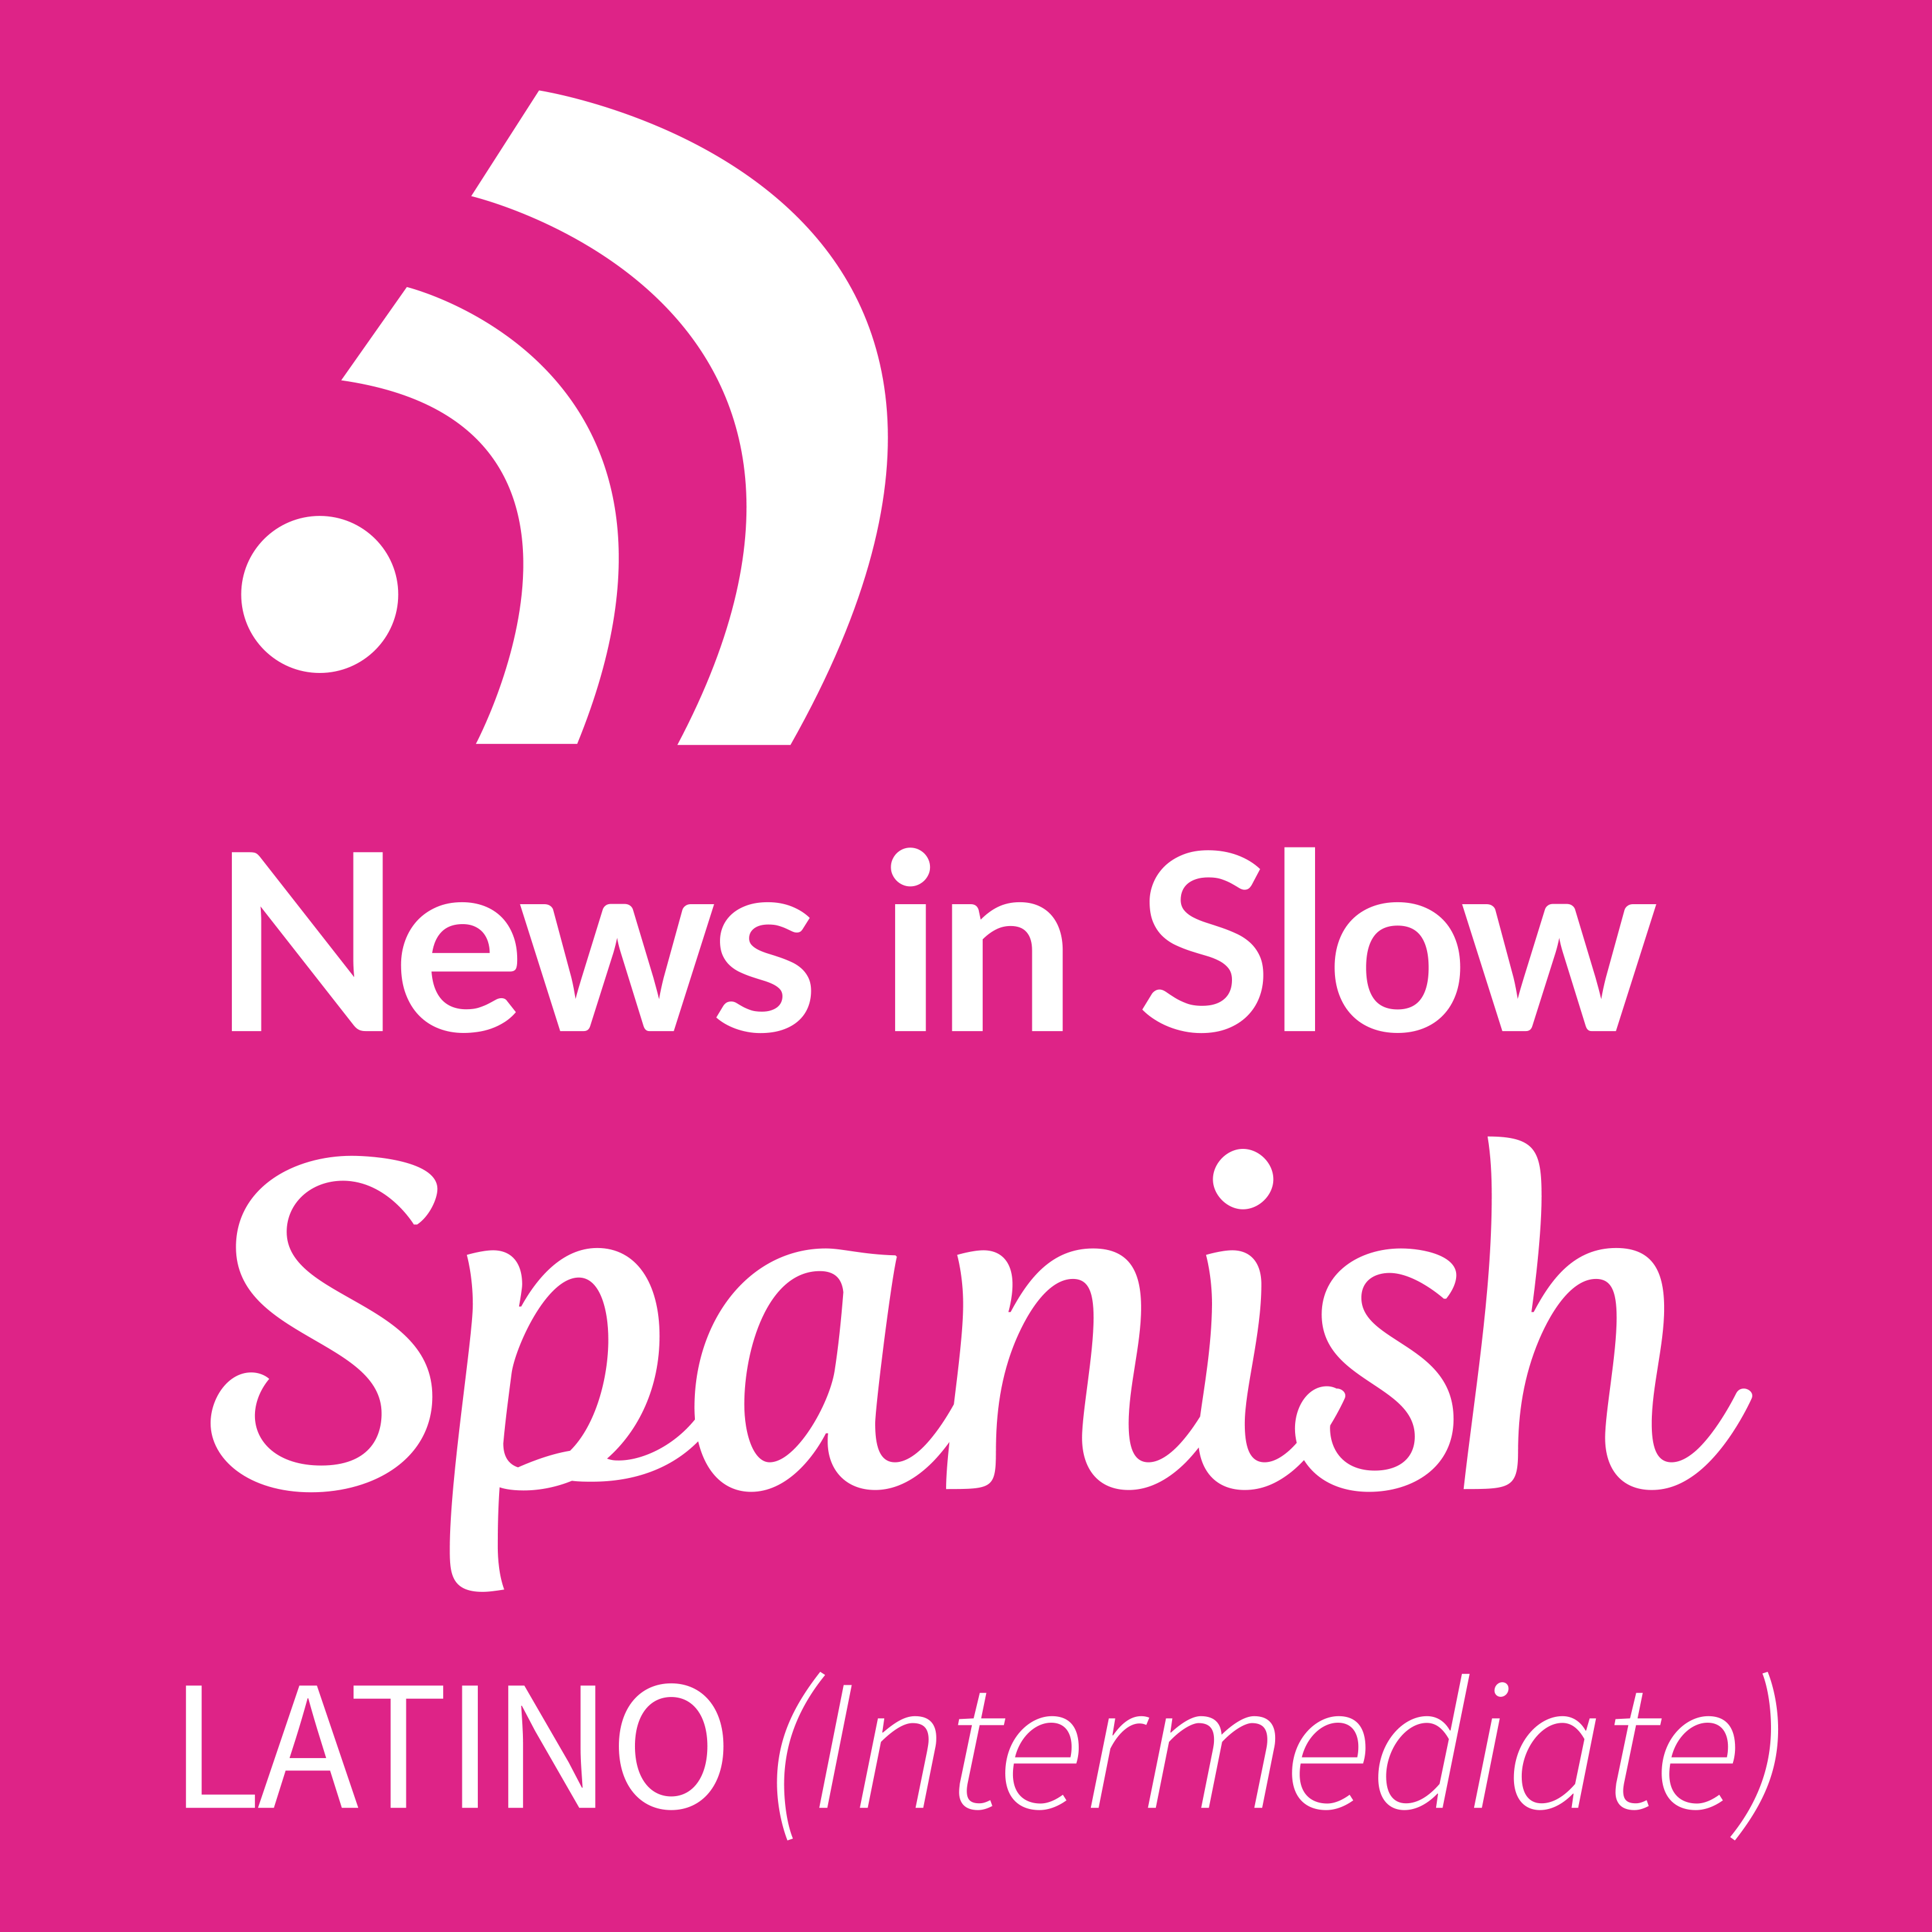 News in Slow Spanish Latino - # 156 - Spanish grammar, news and expressions